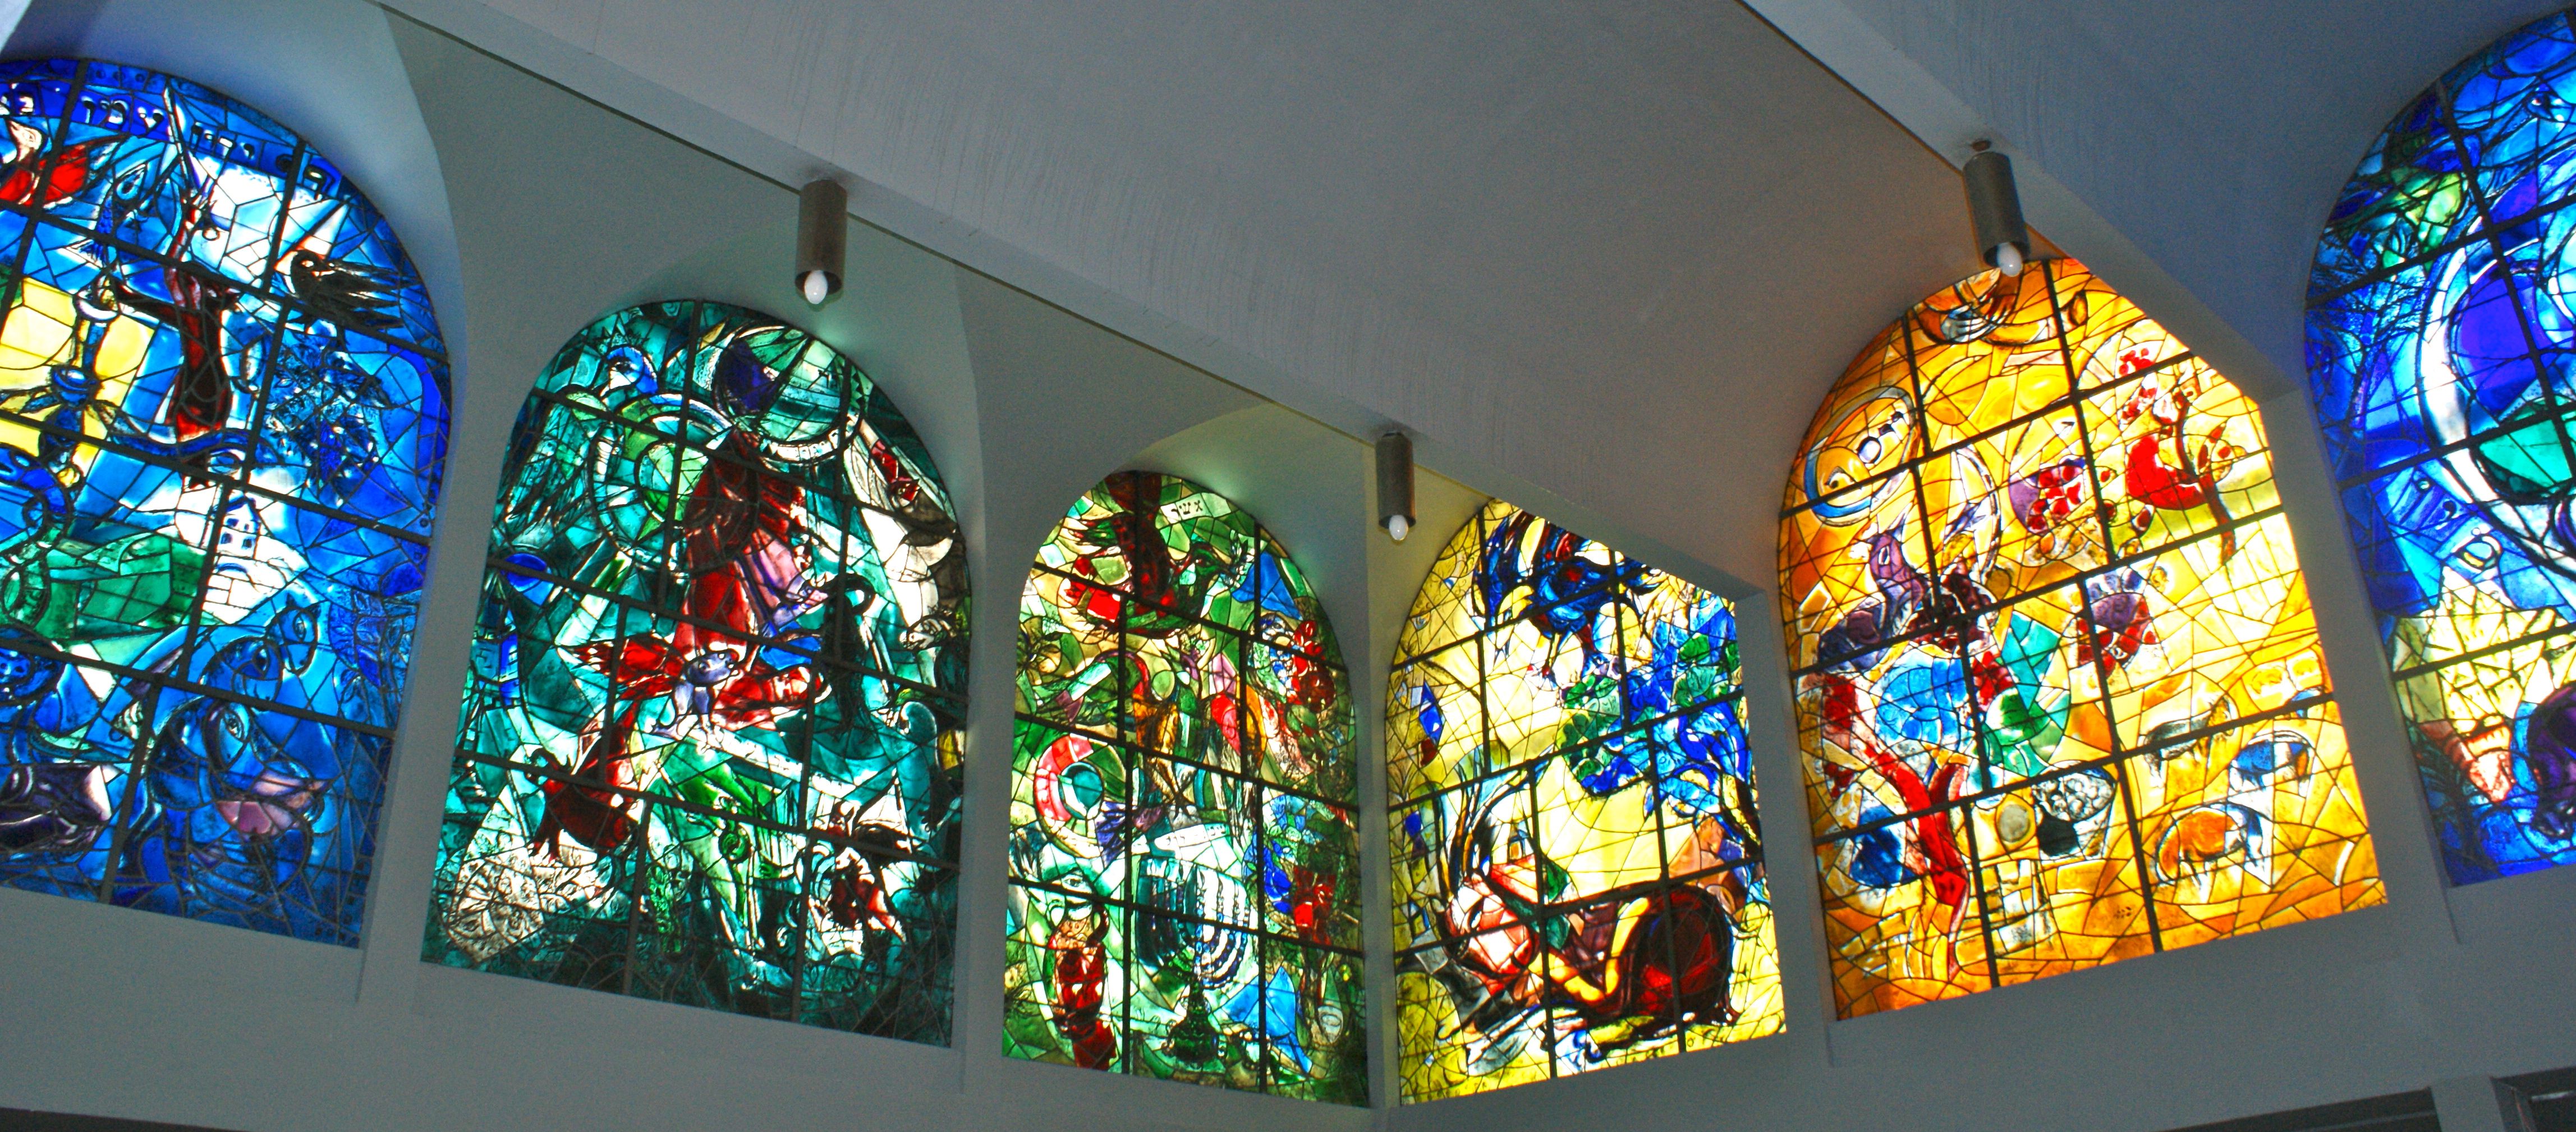 Marc Chagall's 12 Jerusalem windows in full display tell the story of the 12 tribes of Israel